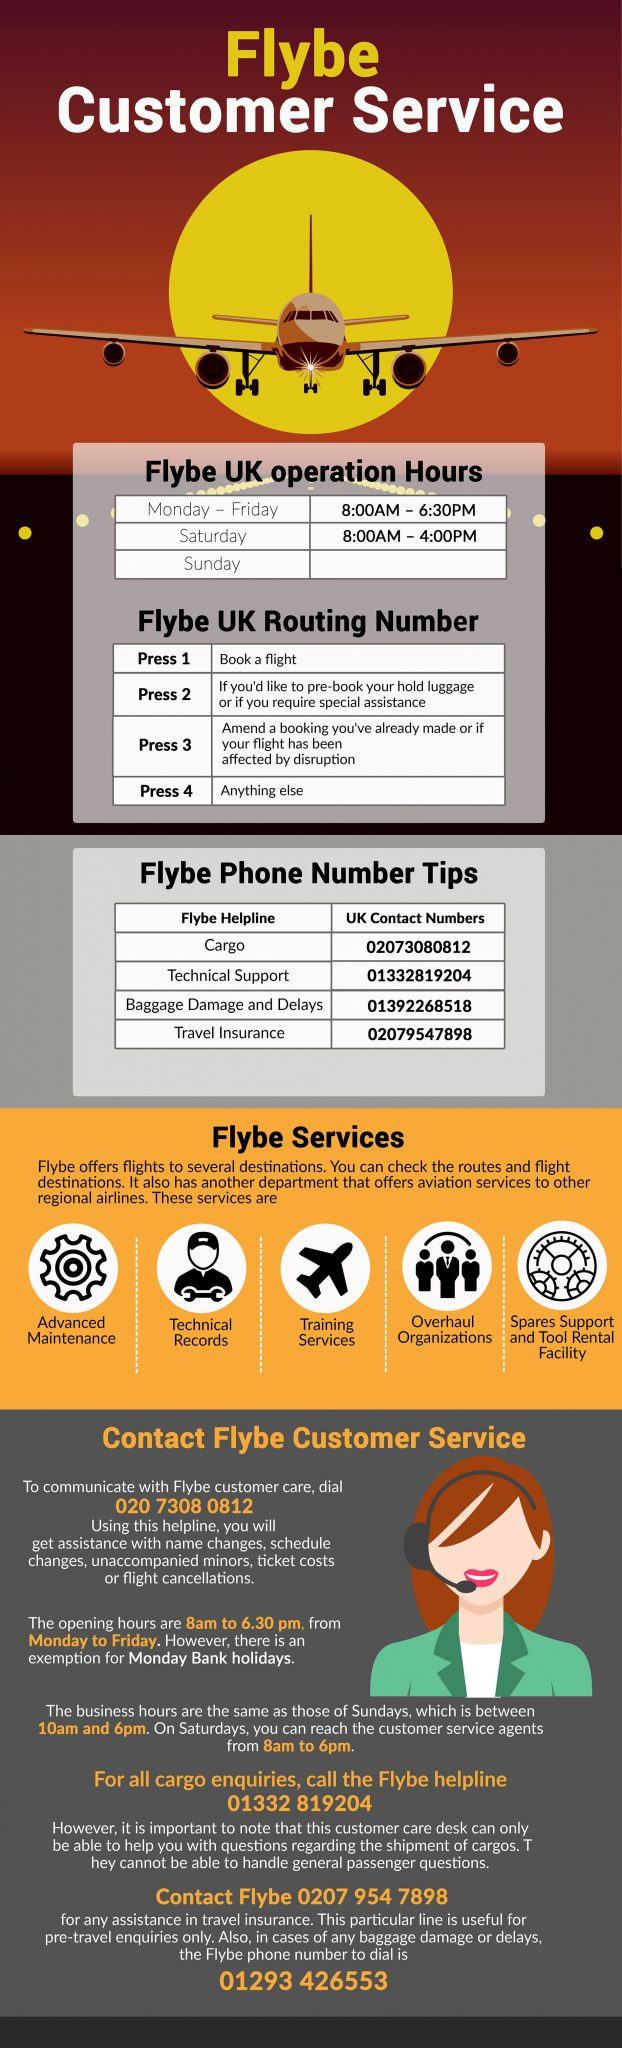 Flybe customer care numbers